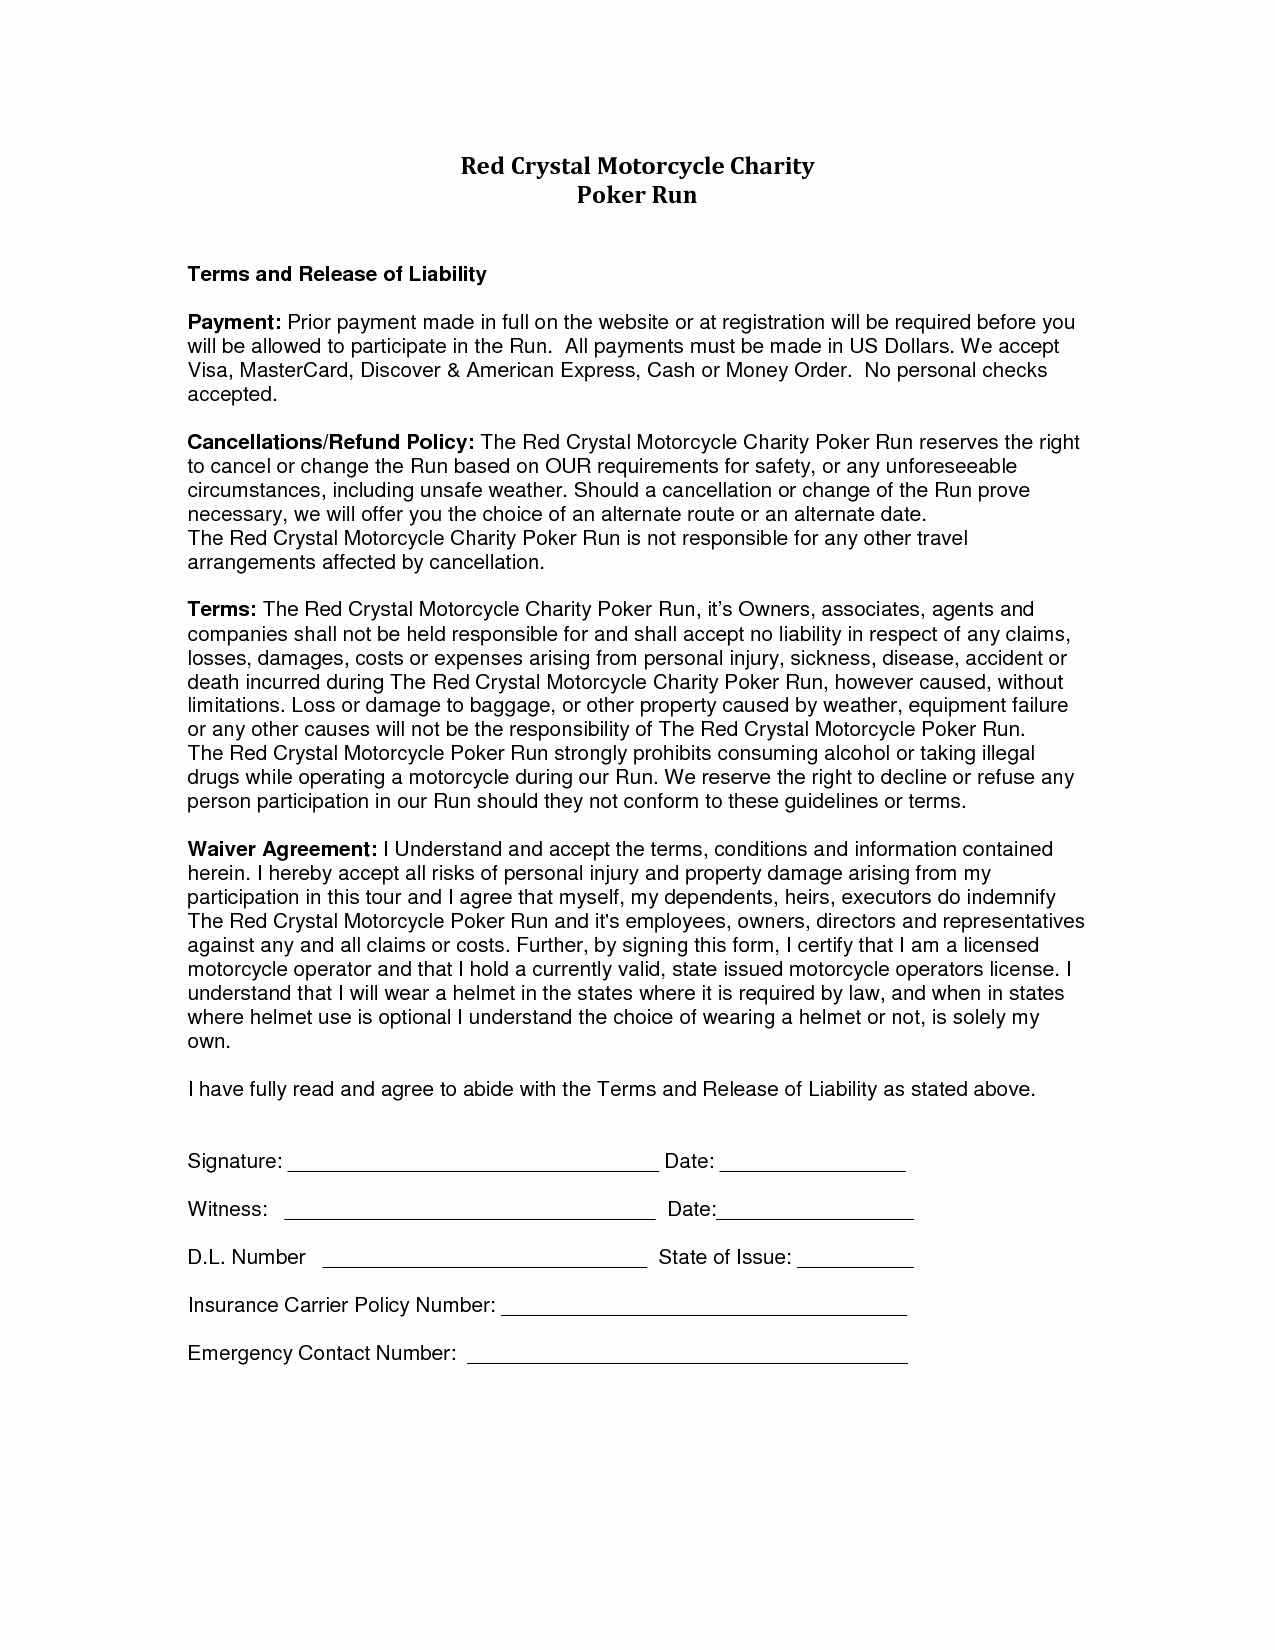 Release Of Responsibility Letter Fresh Release Liability Sample Free Printable Documents